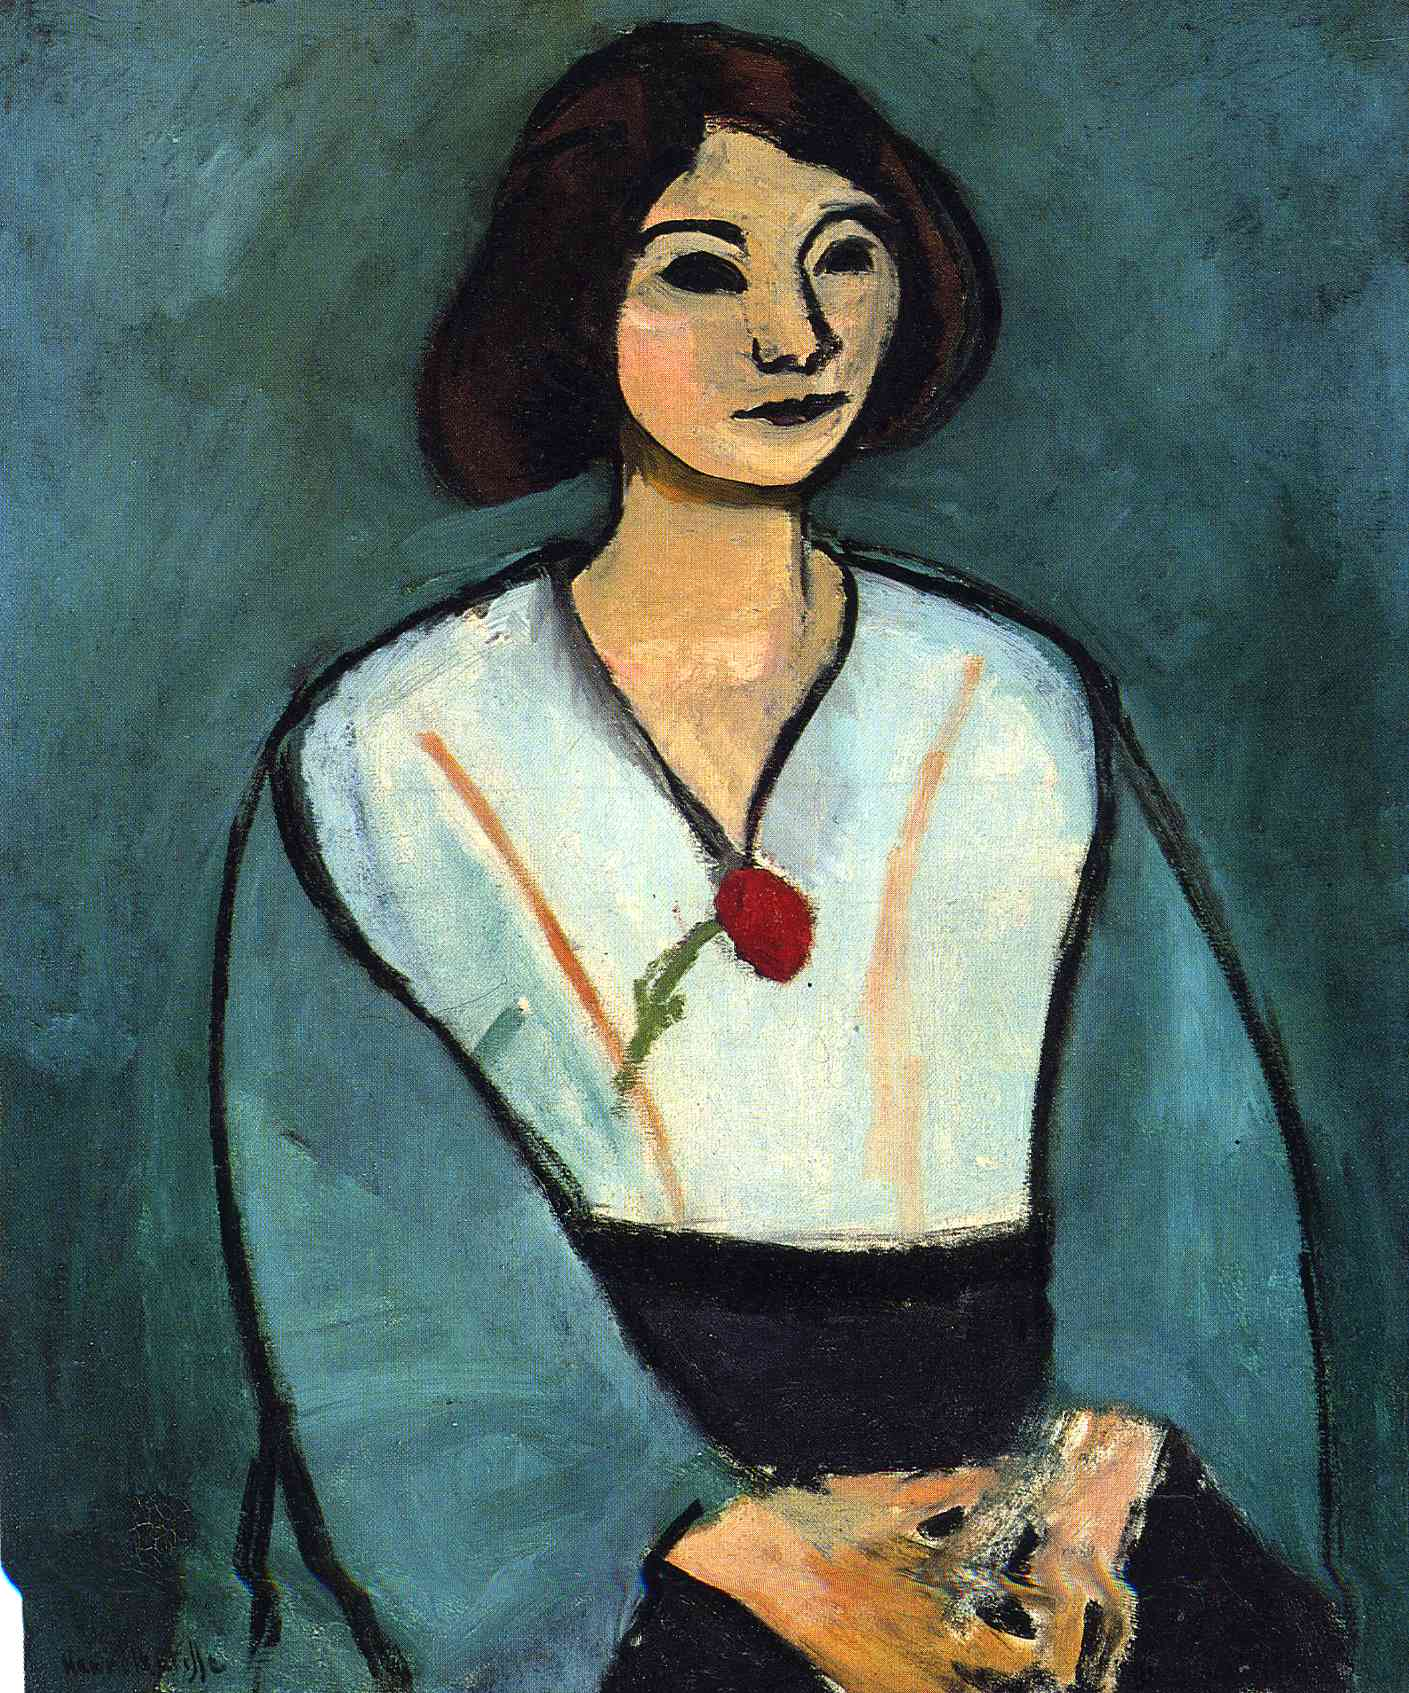 Henri Matisse - Woman in Green with a Carnation 1909